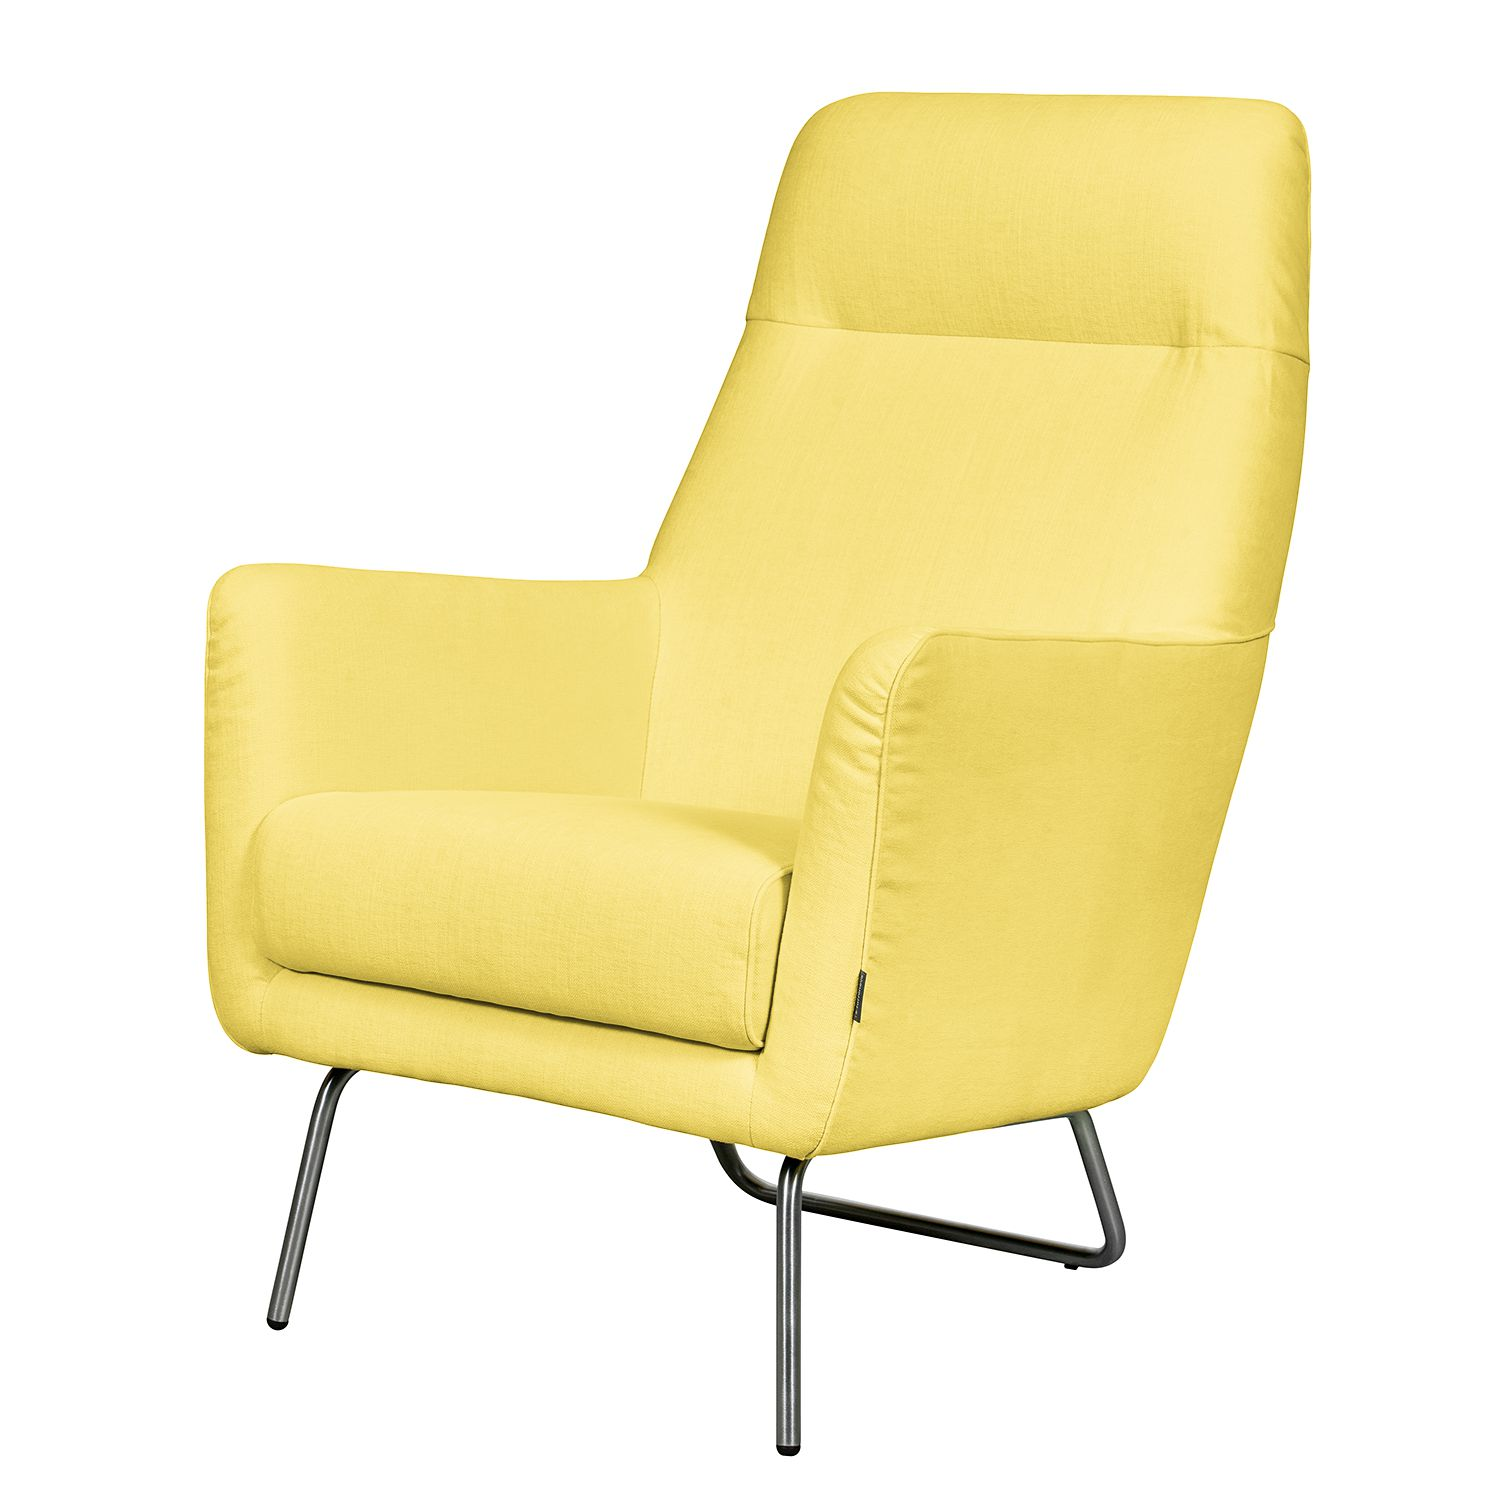 Fauteuil Bebour - Tissu - Jaune, Says Who